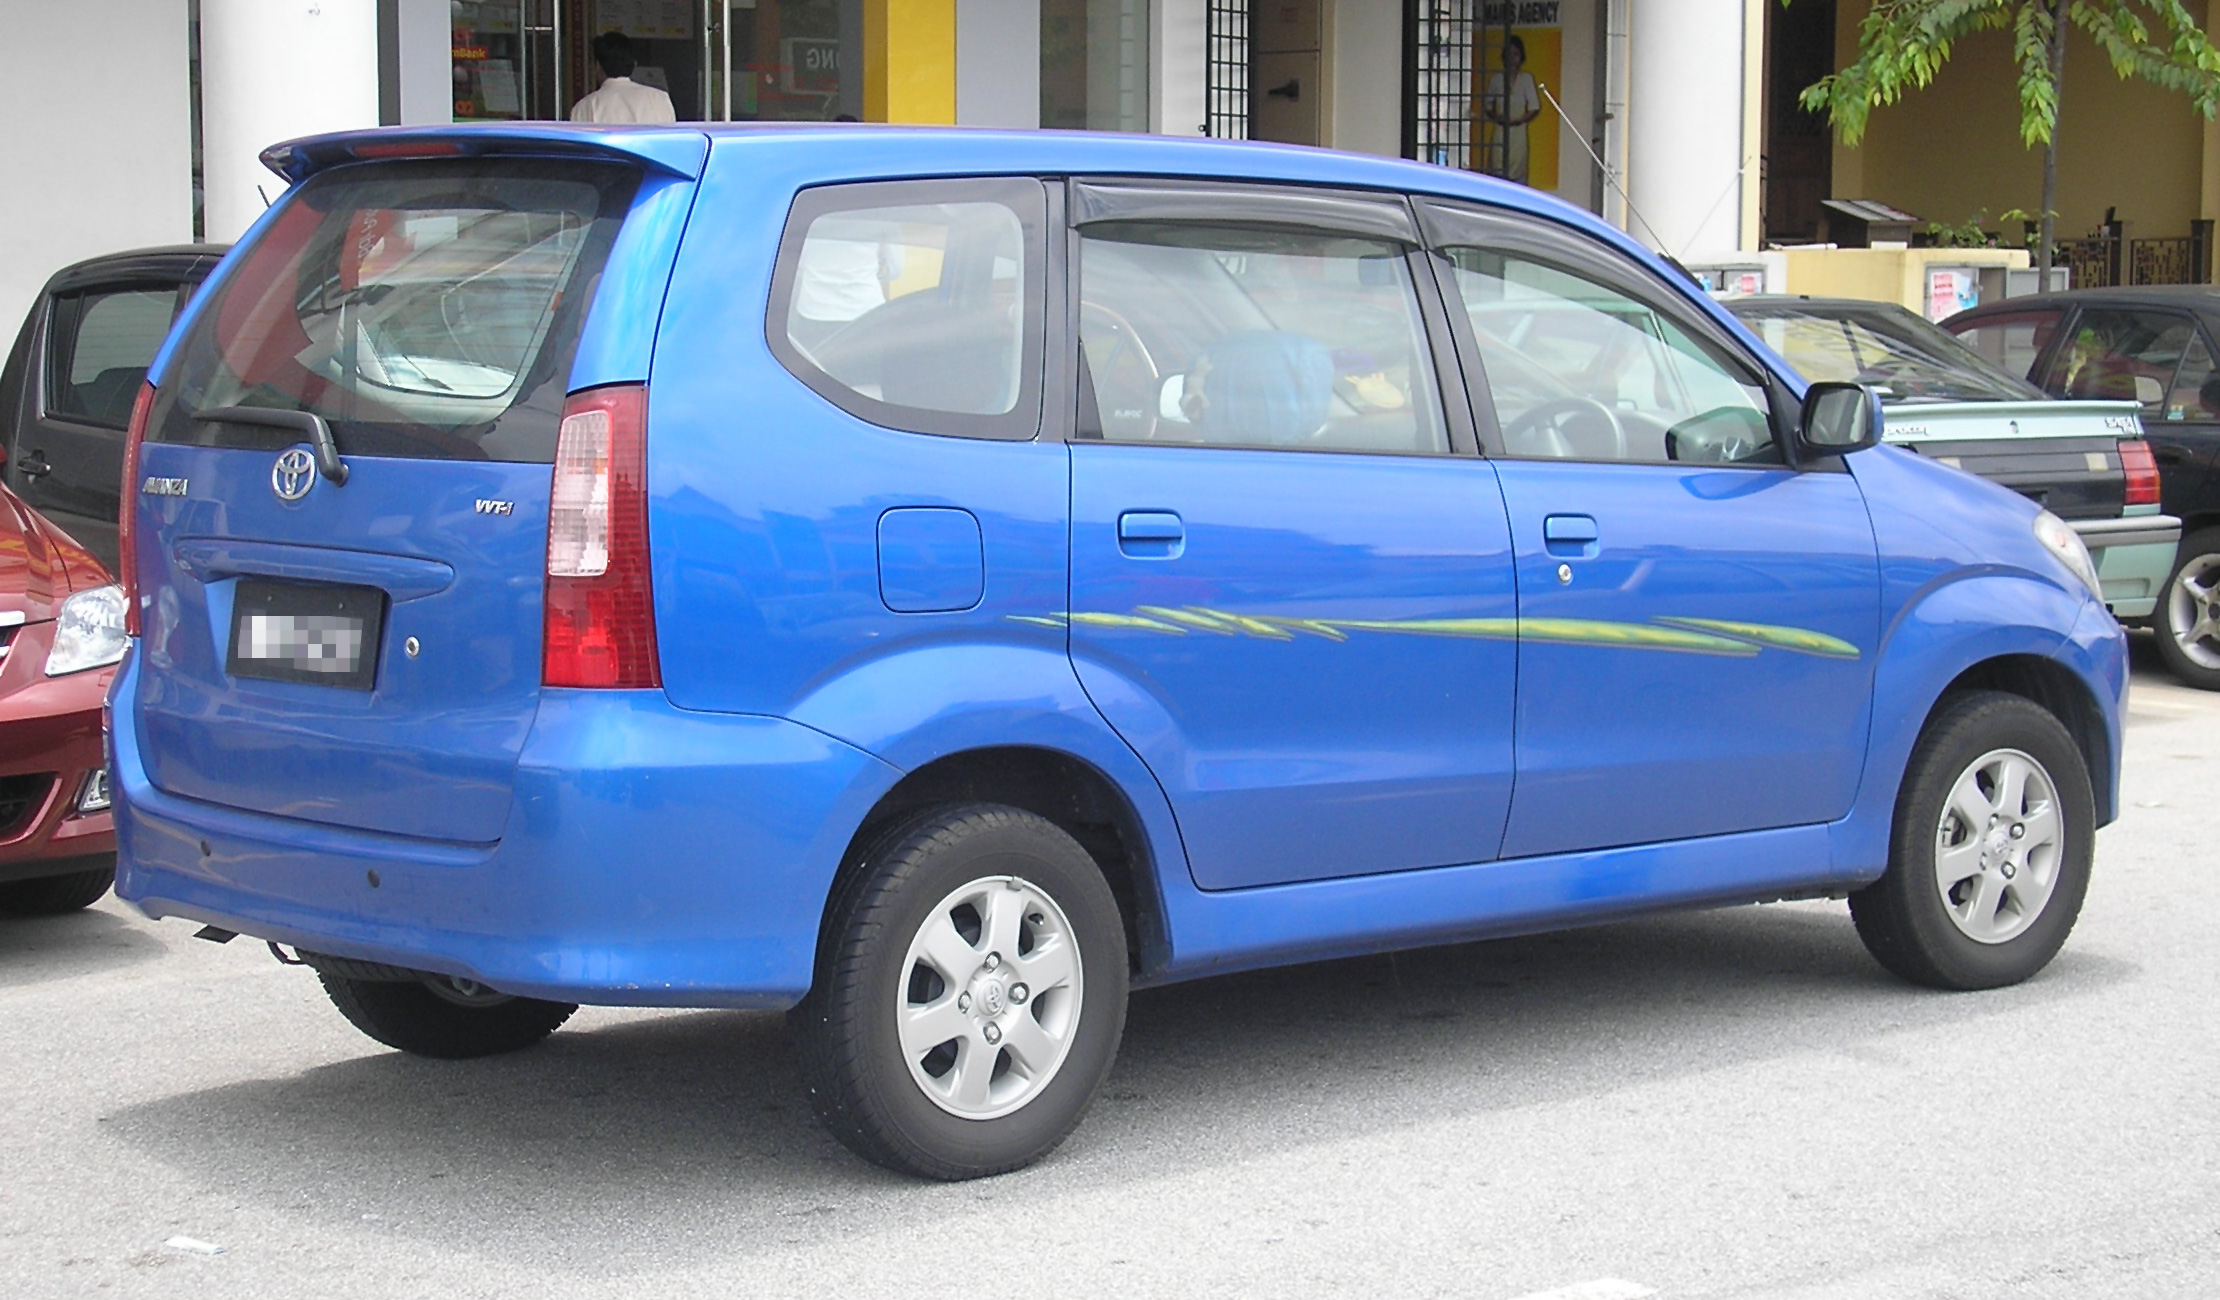 Audi And Ford Cars Gallery Toyota Avanza